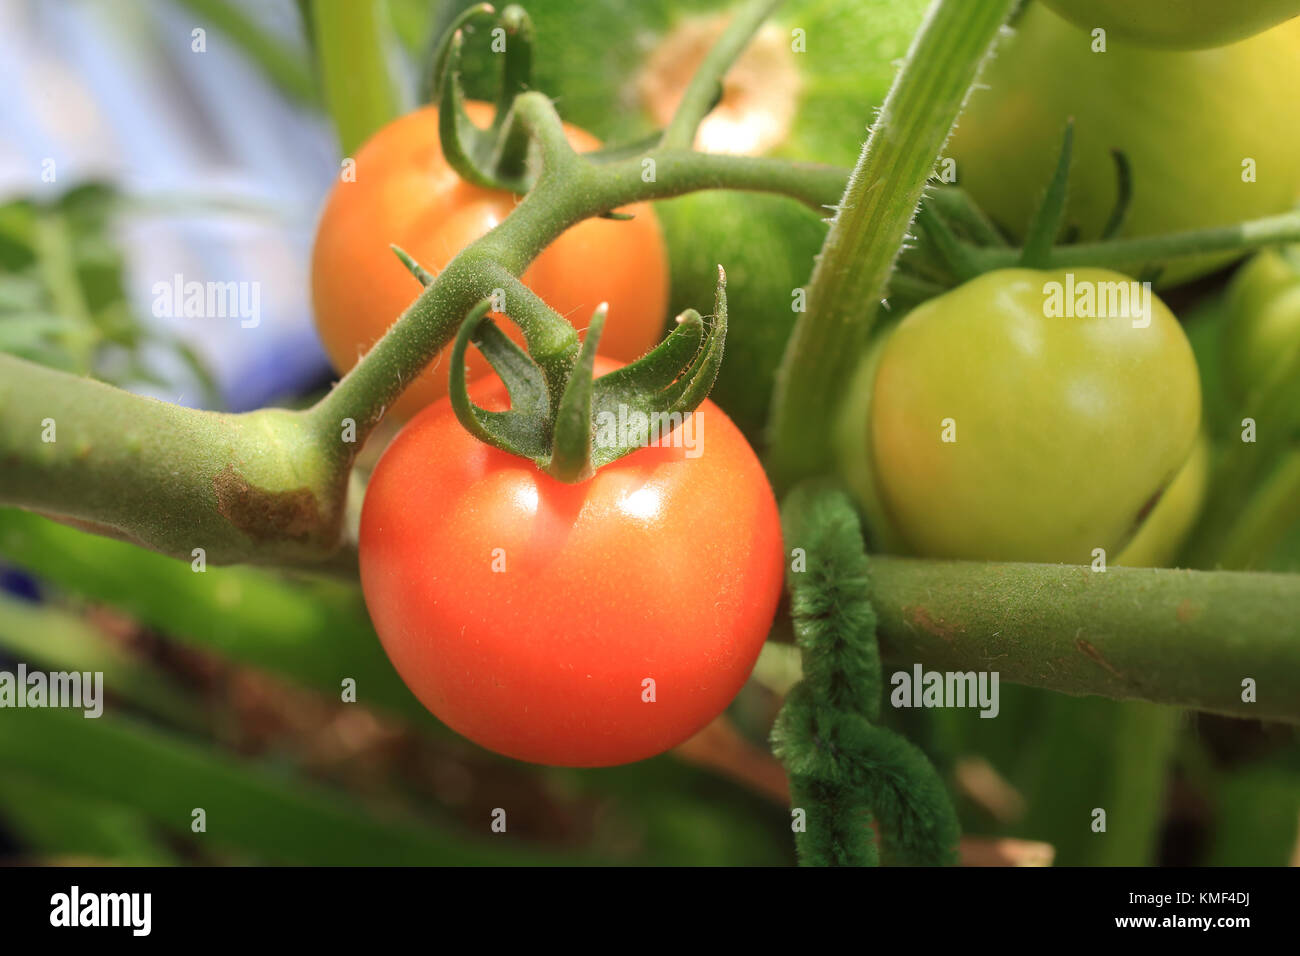 Tomato Wuppertal City Vegetable Gardening Stock Photos And City Vegetable